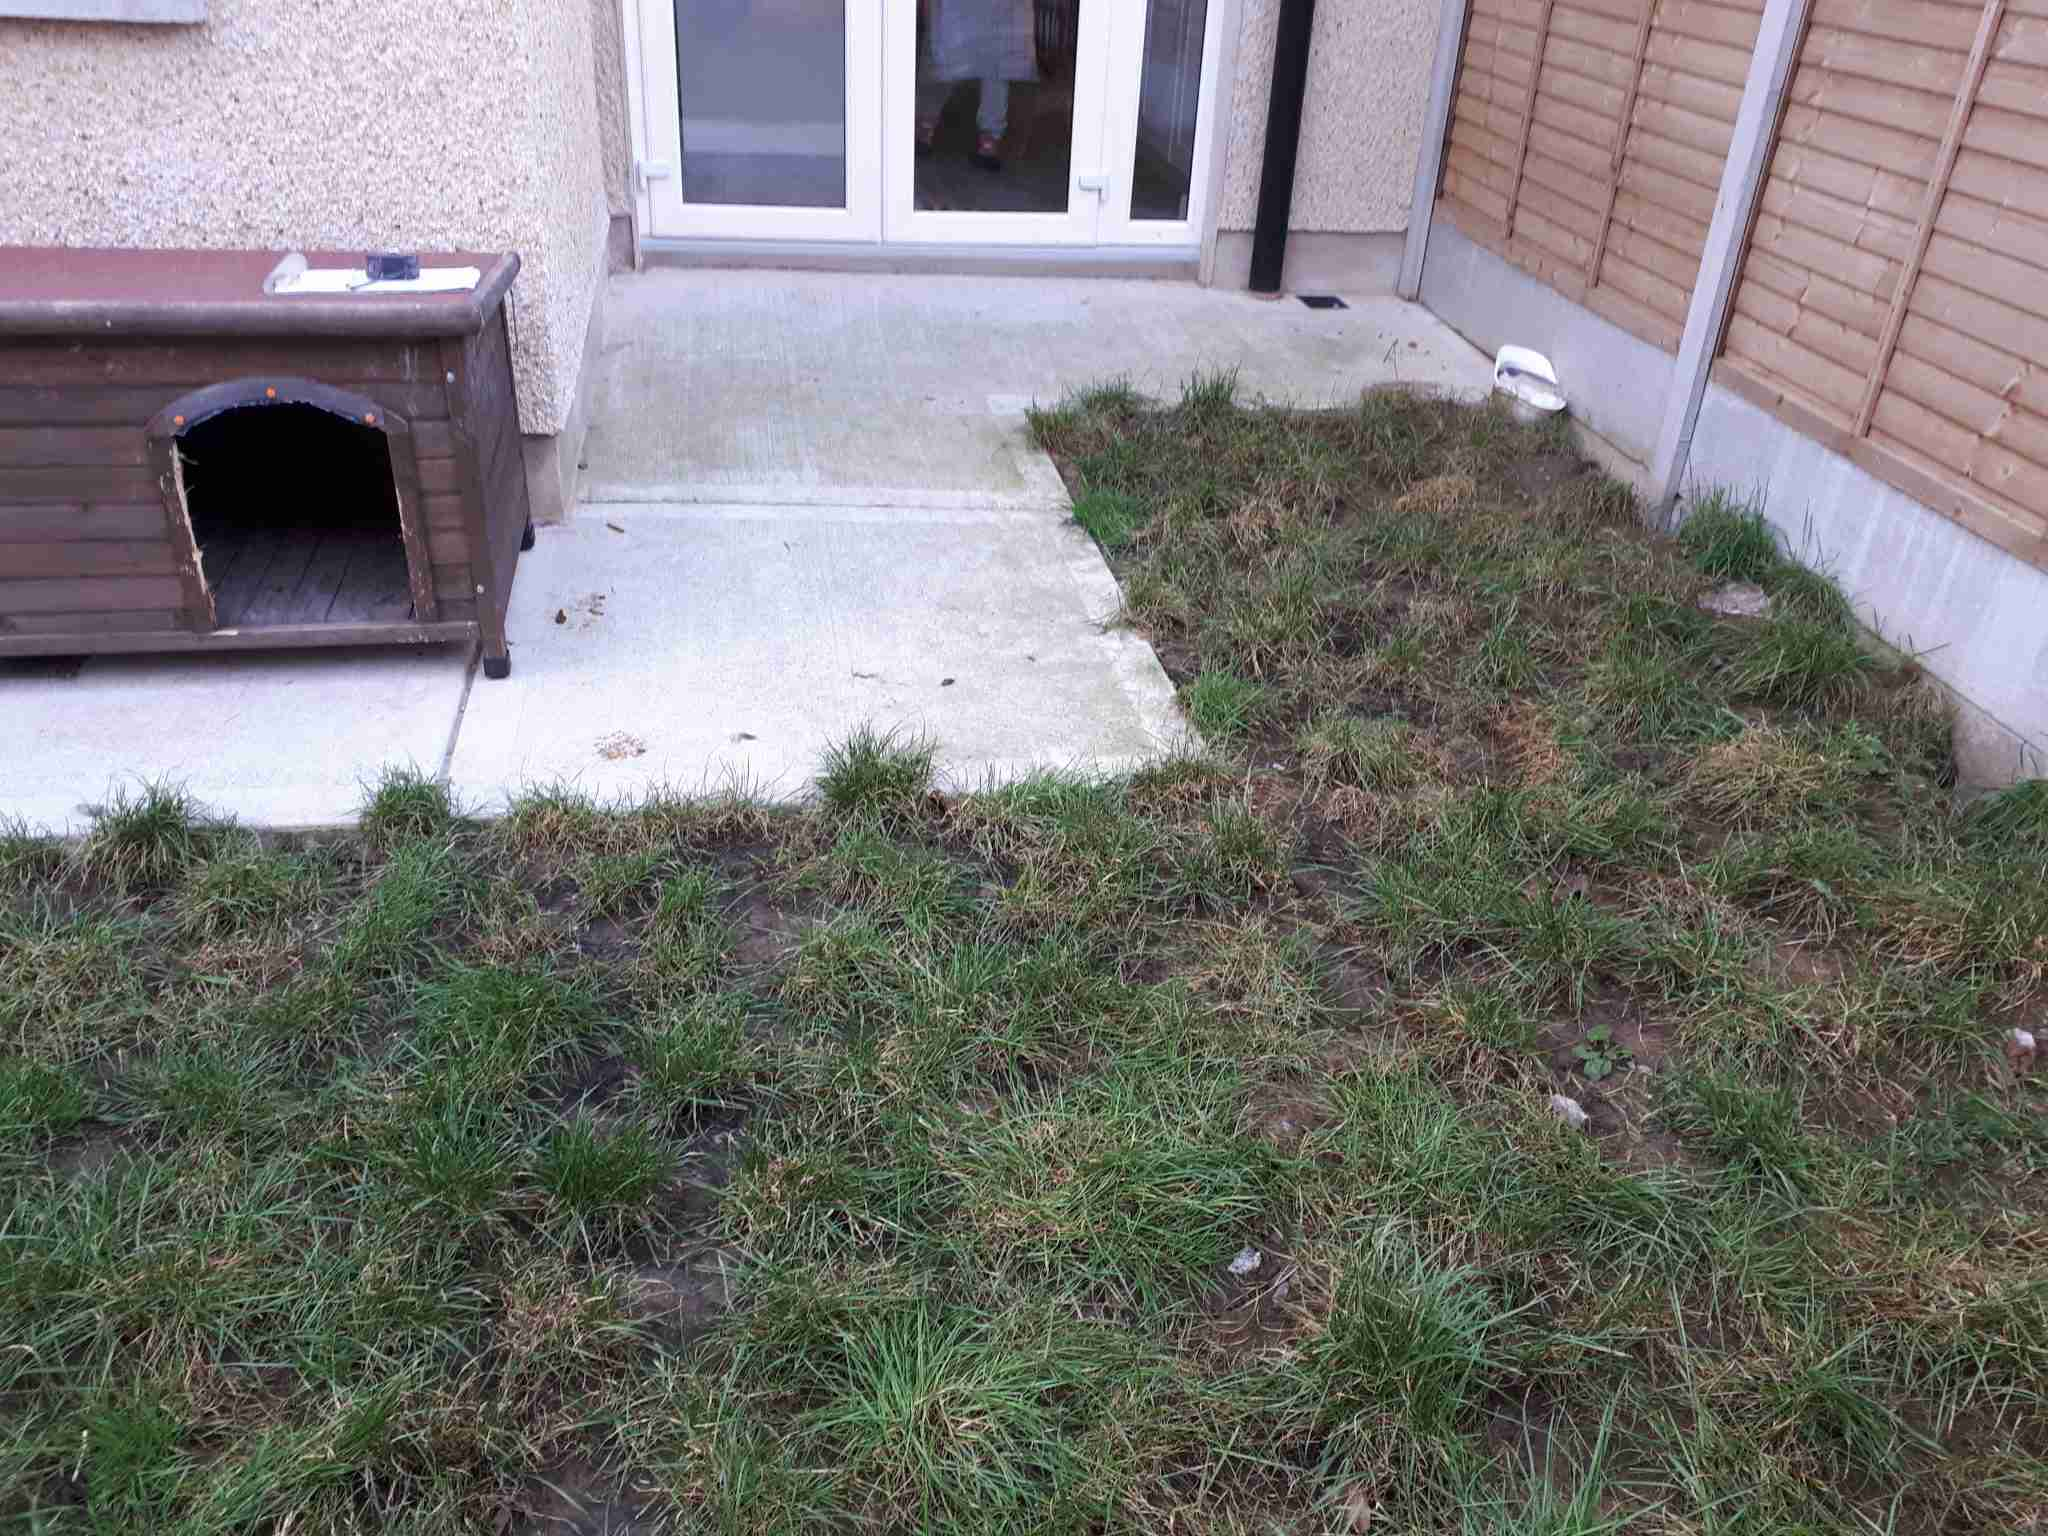 Image of lawn in poor condition, patchy due to animals and wet weather